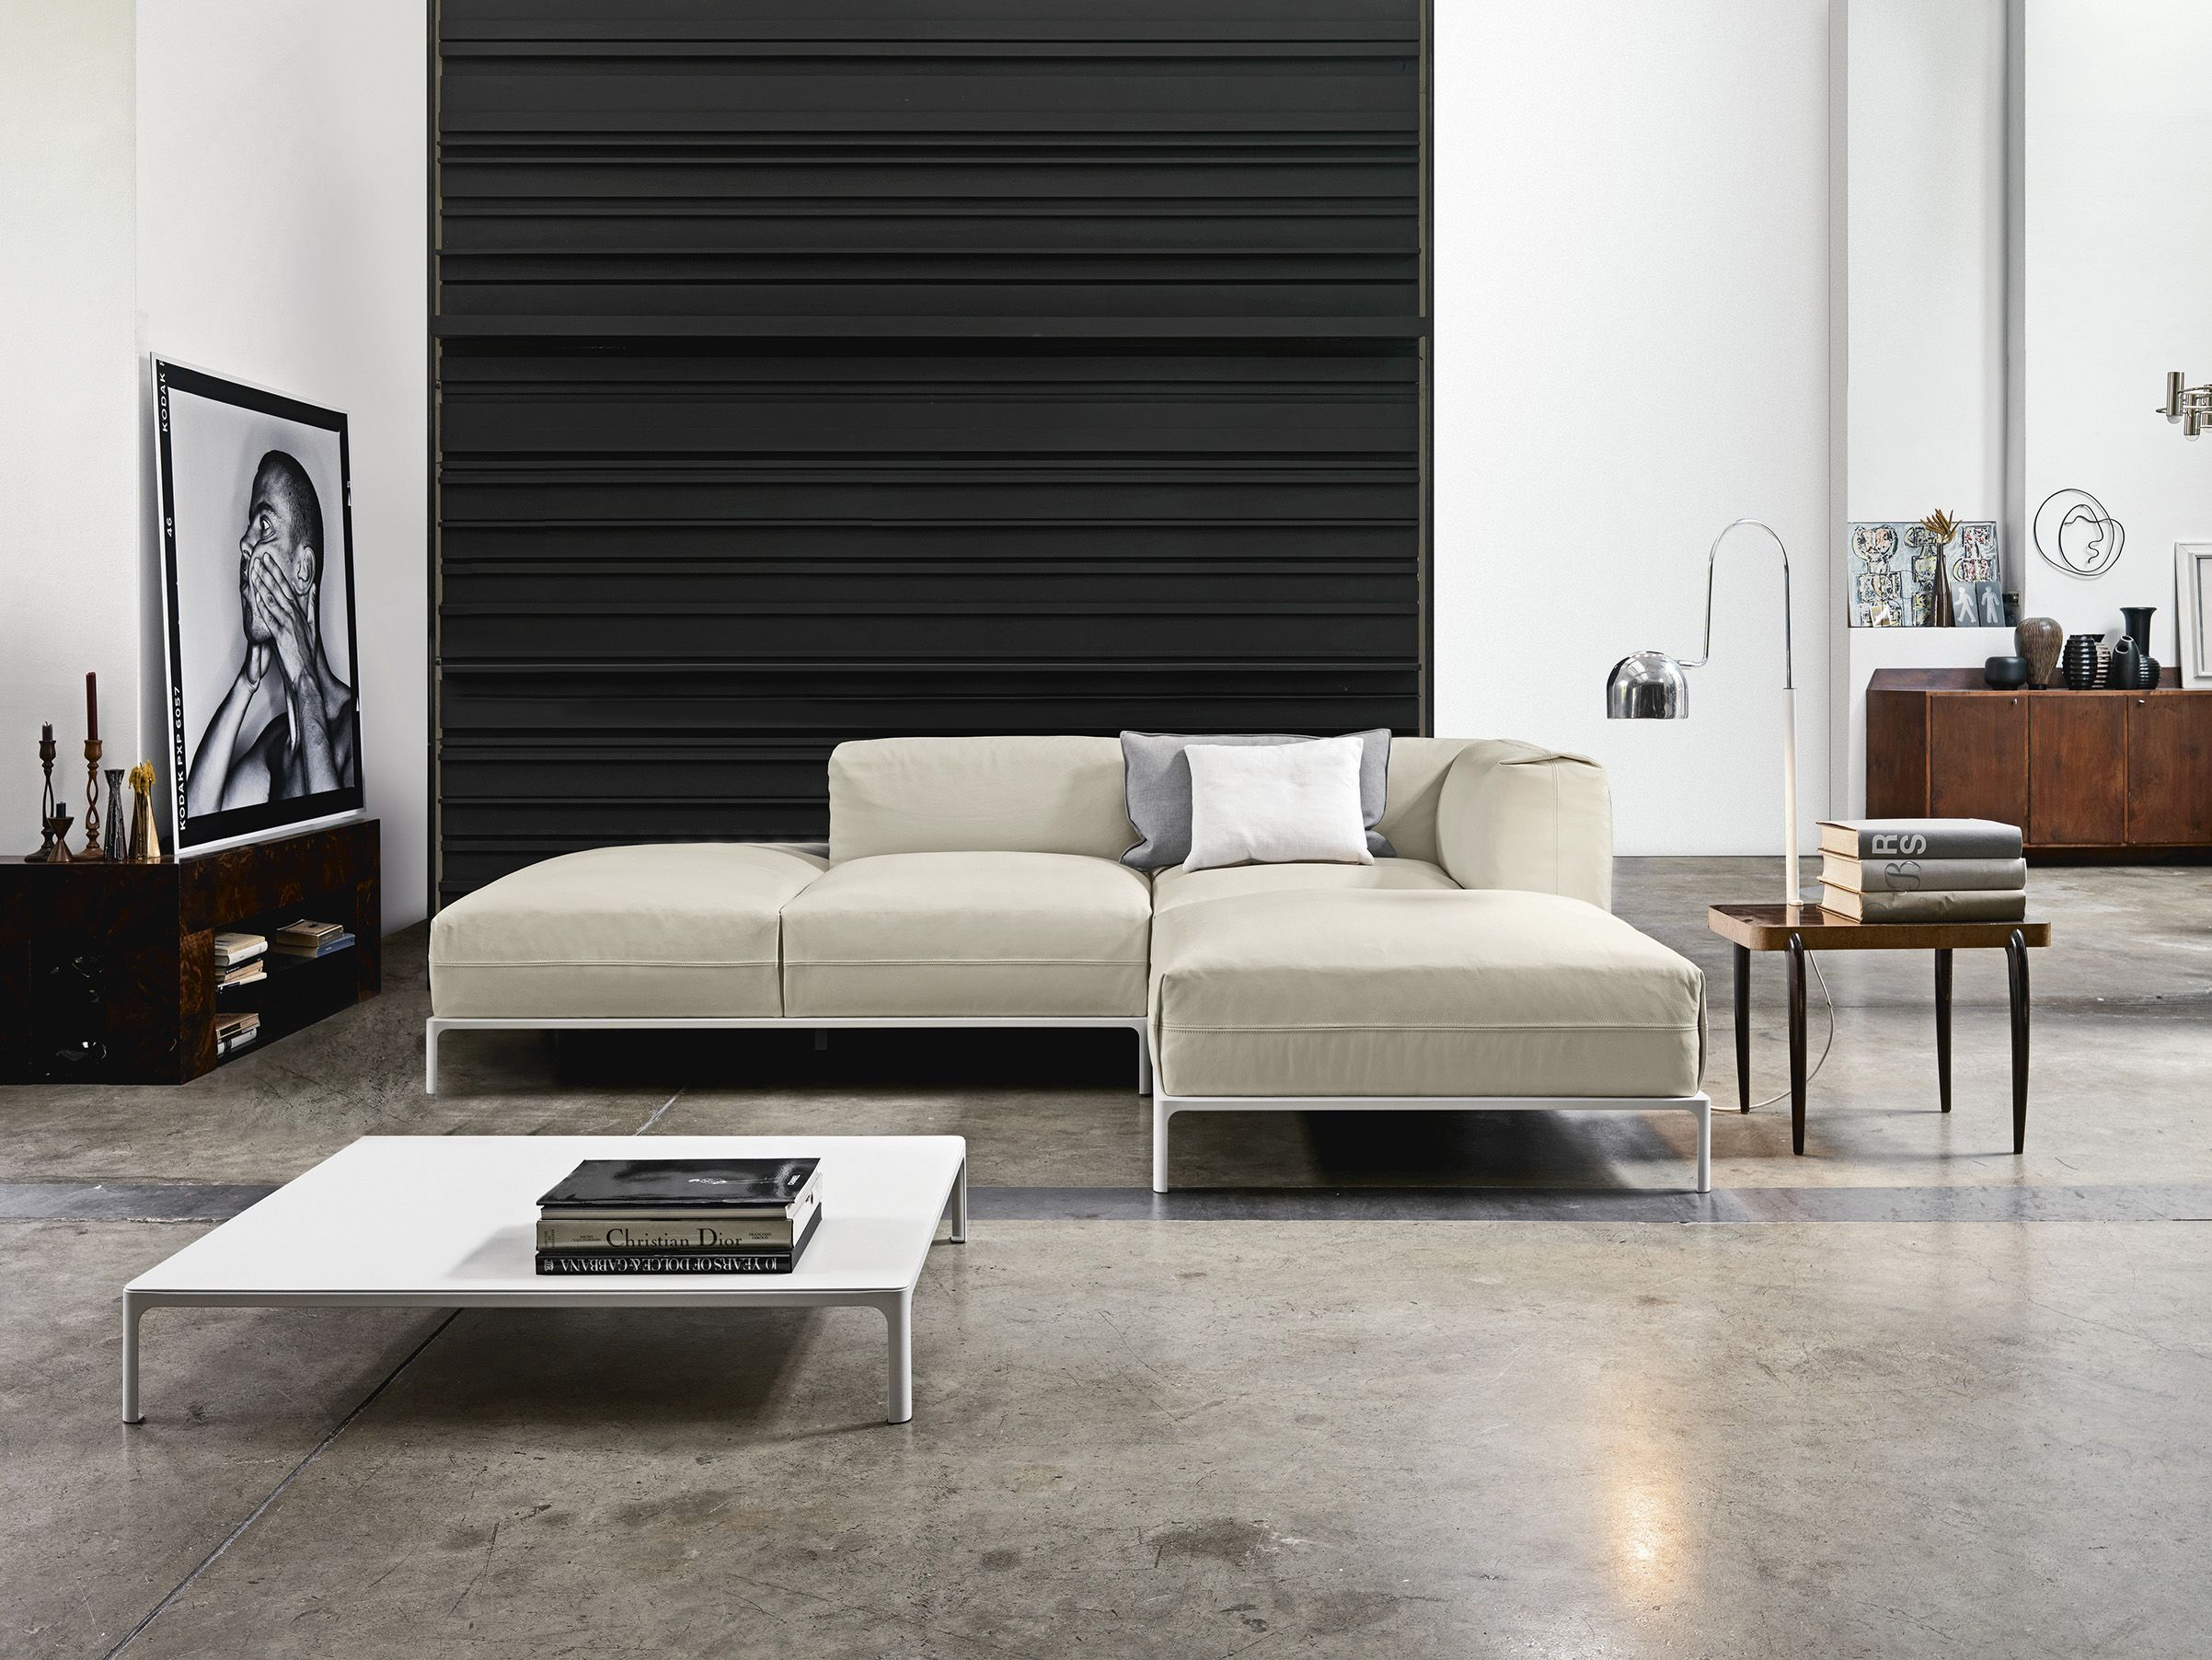 Metropolis modular sofa is a stylistic proposal by the ...